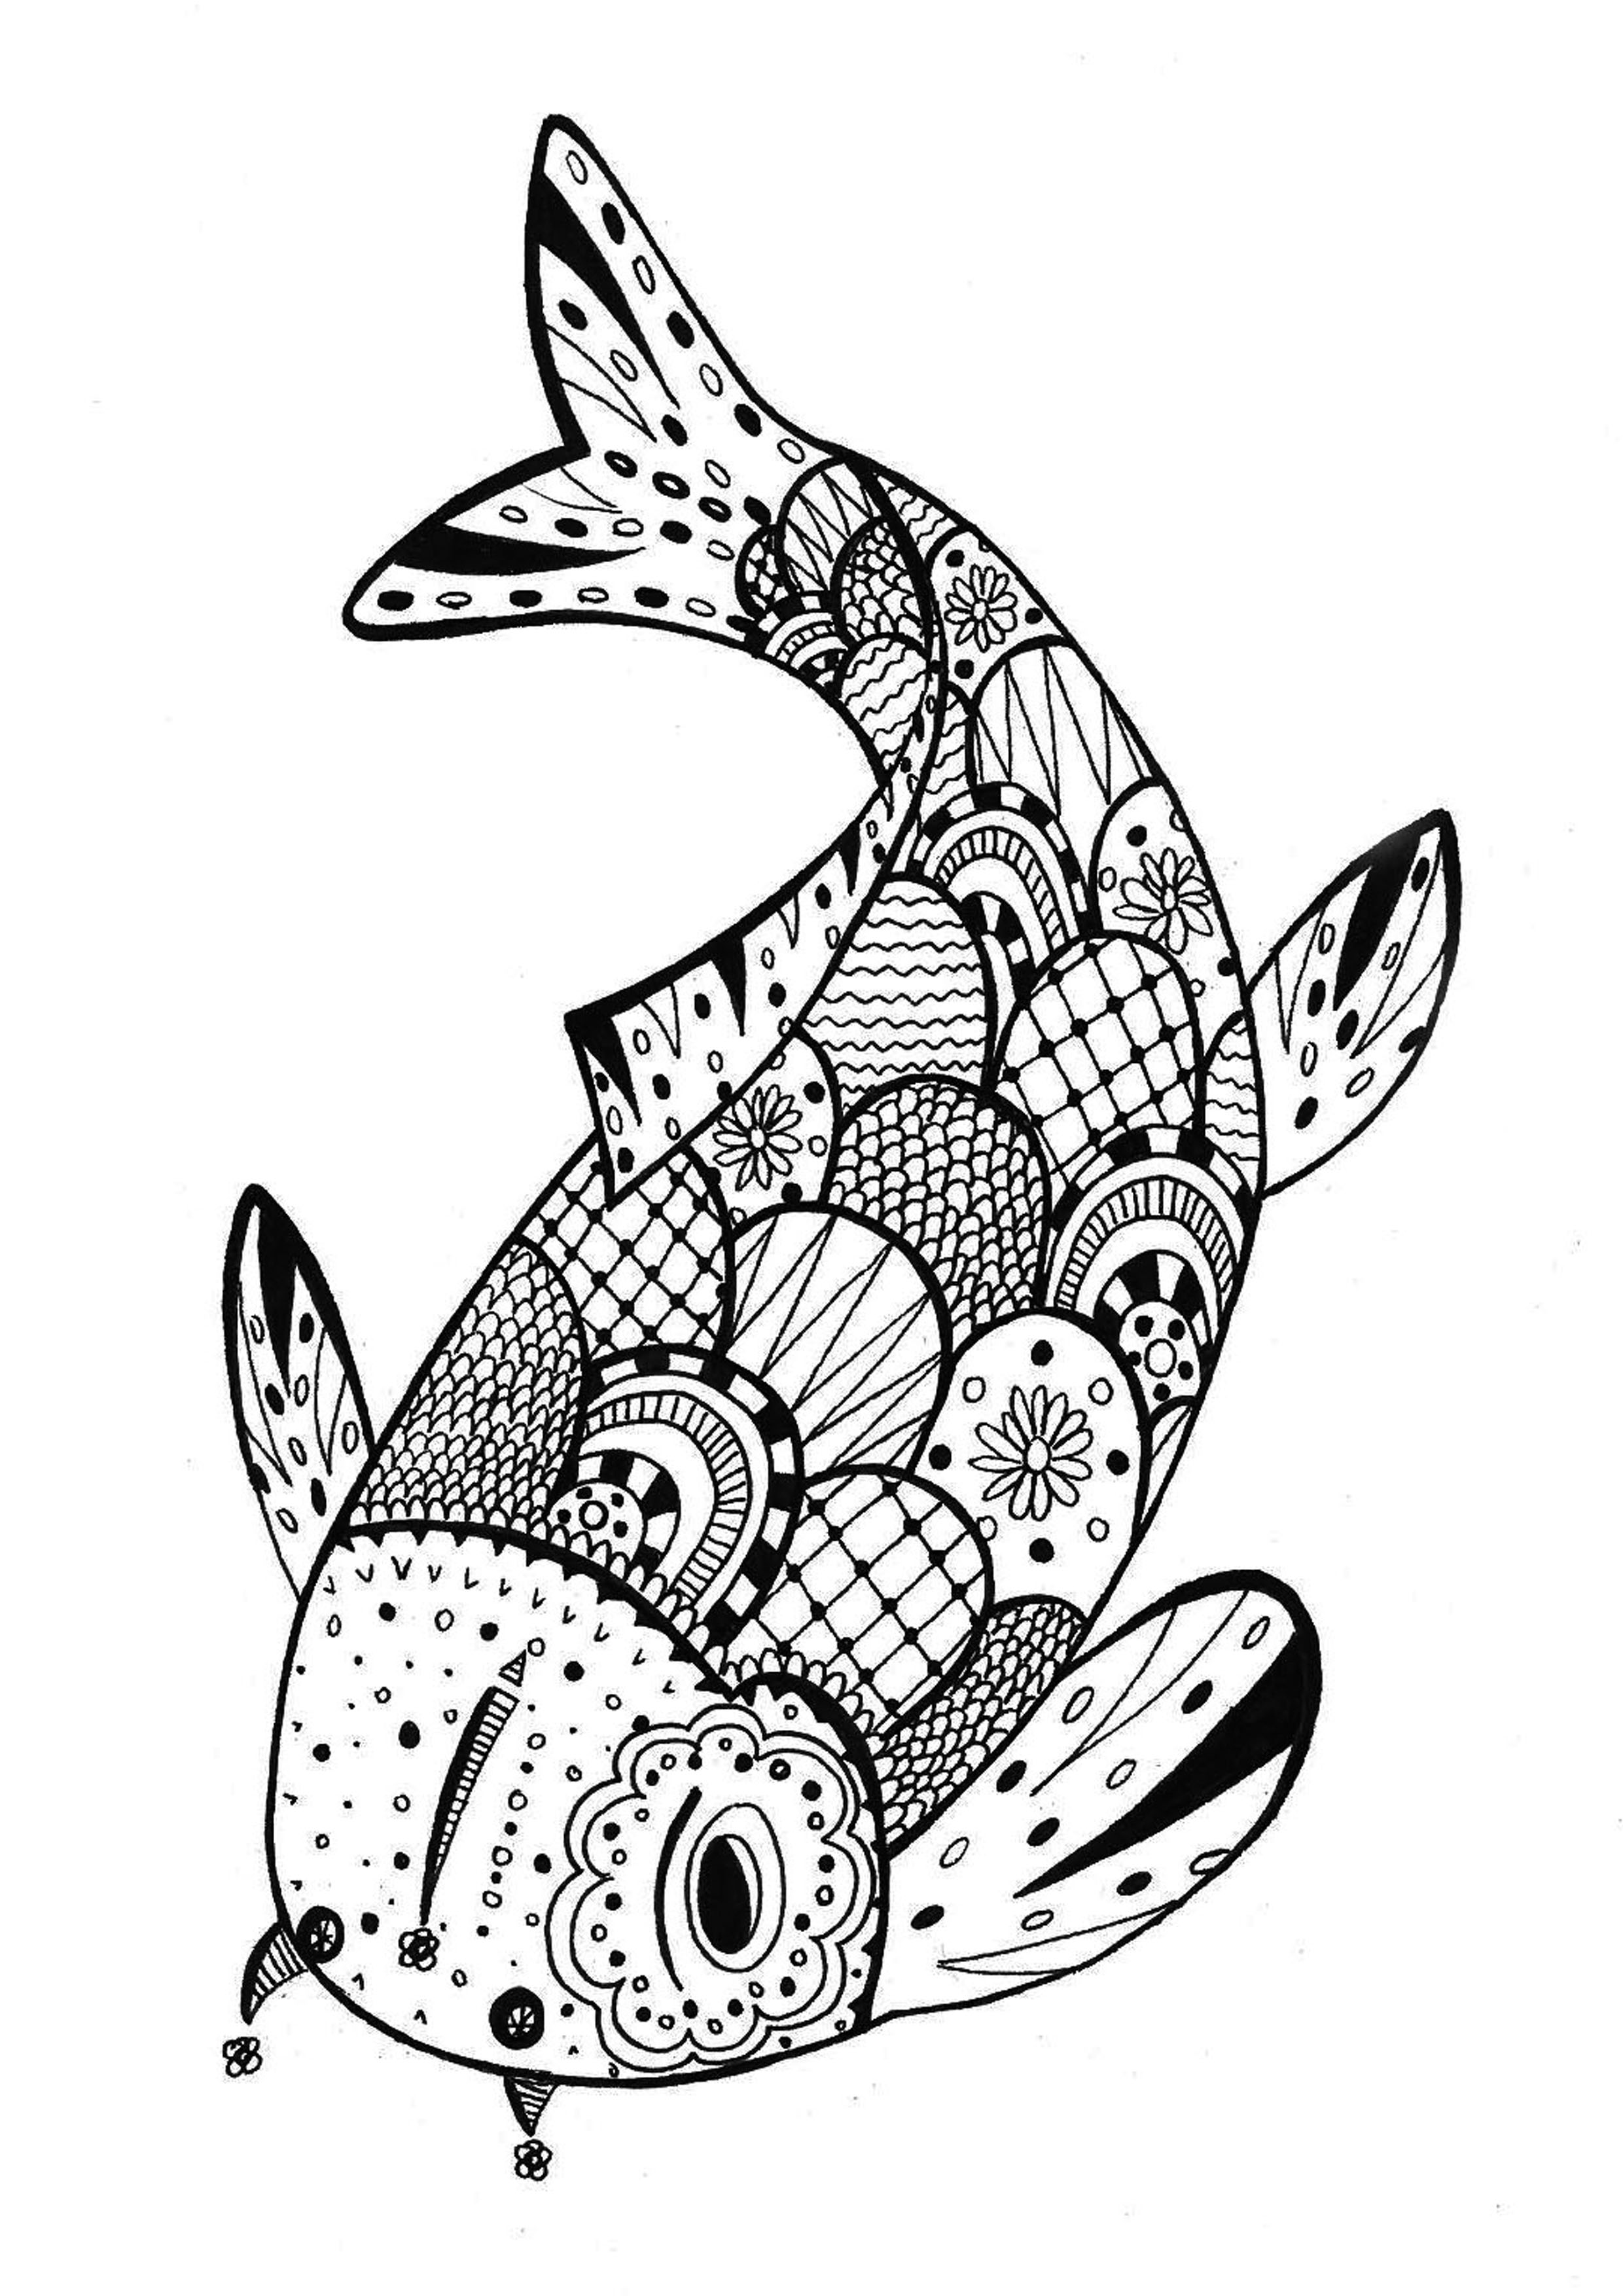 kids easy coloring book easy coloring pages easy coloring pages insect coloring coloring kids easy book